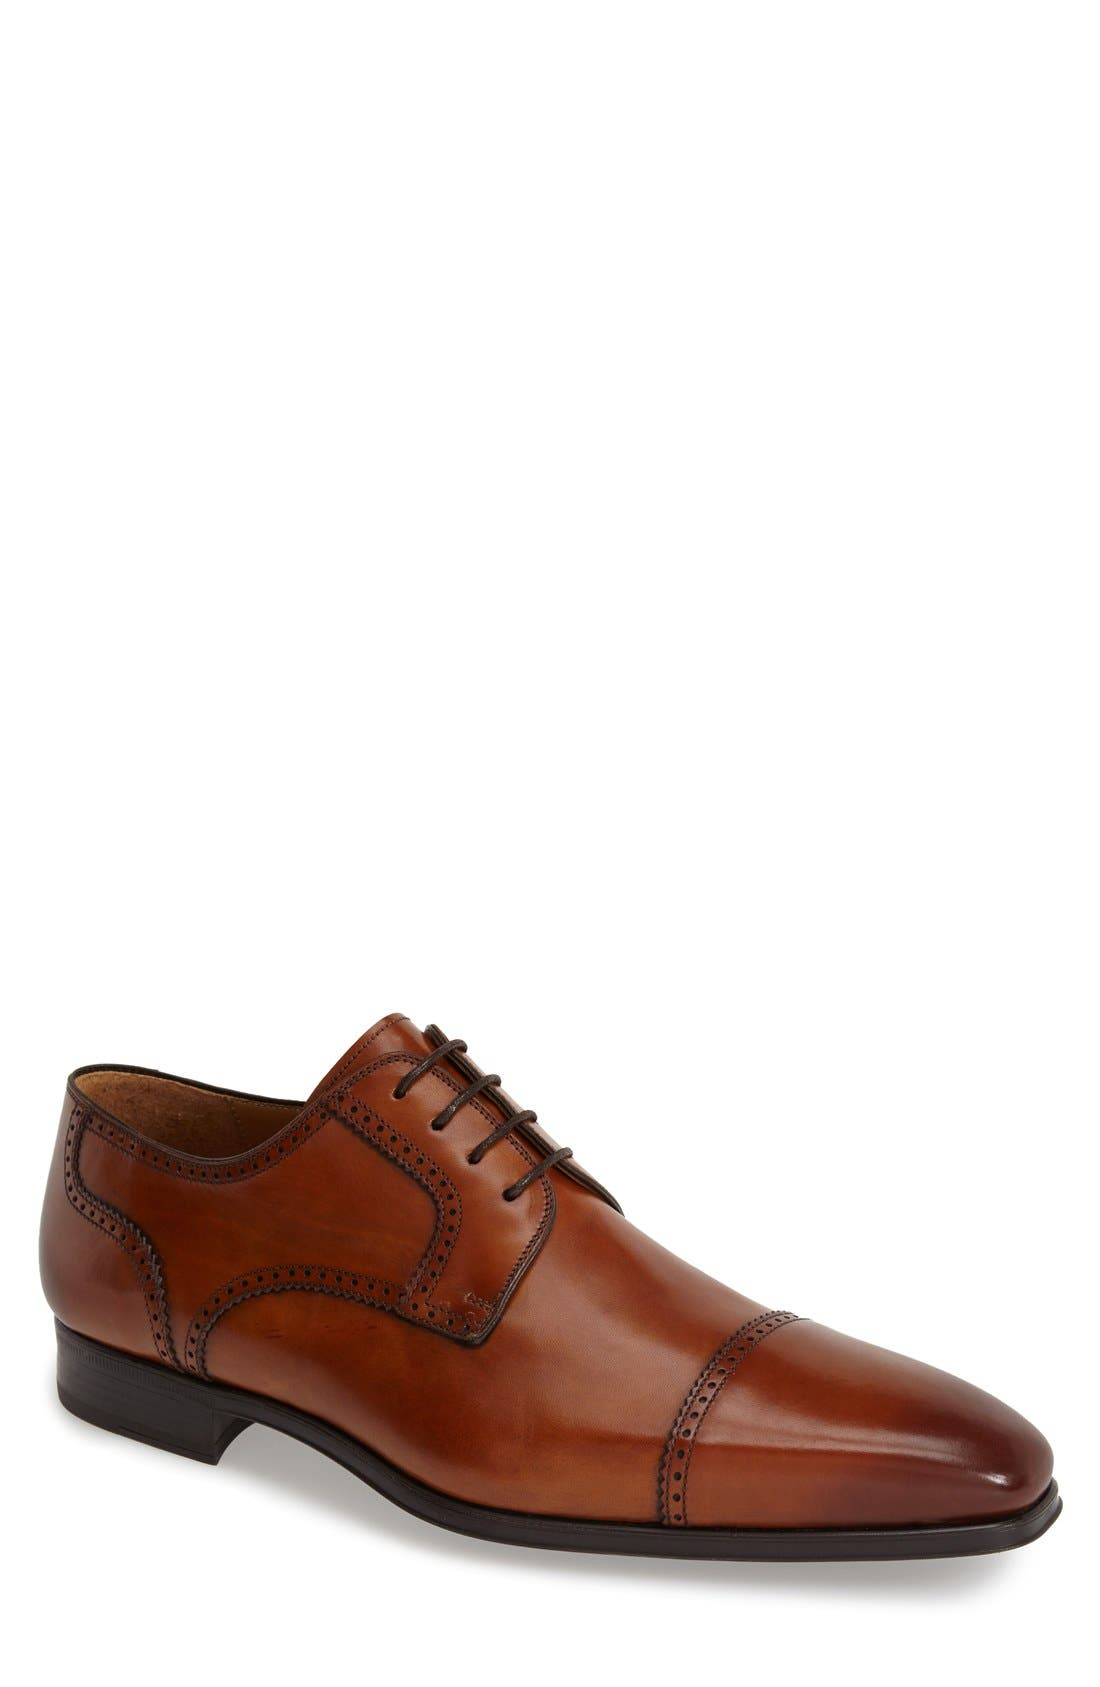 MAGNANNI 'Carlito' Cap Toe Derby, Main, color, 219